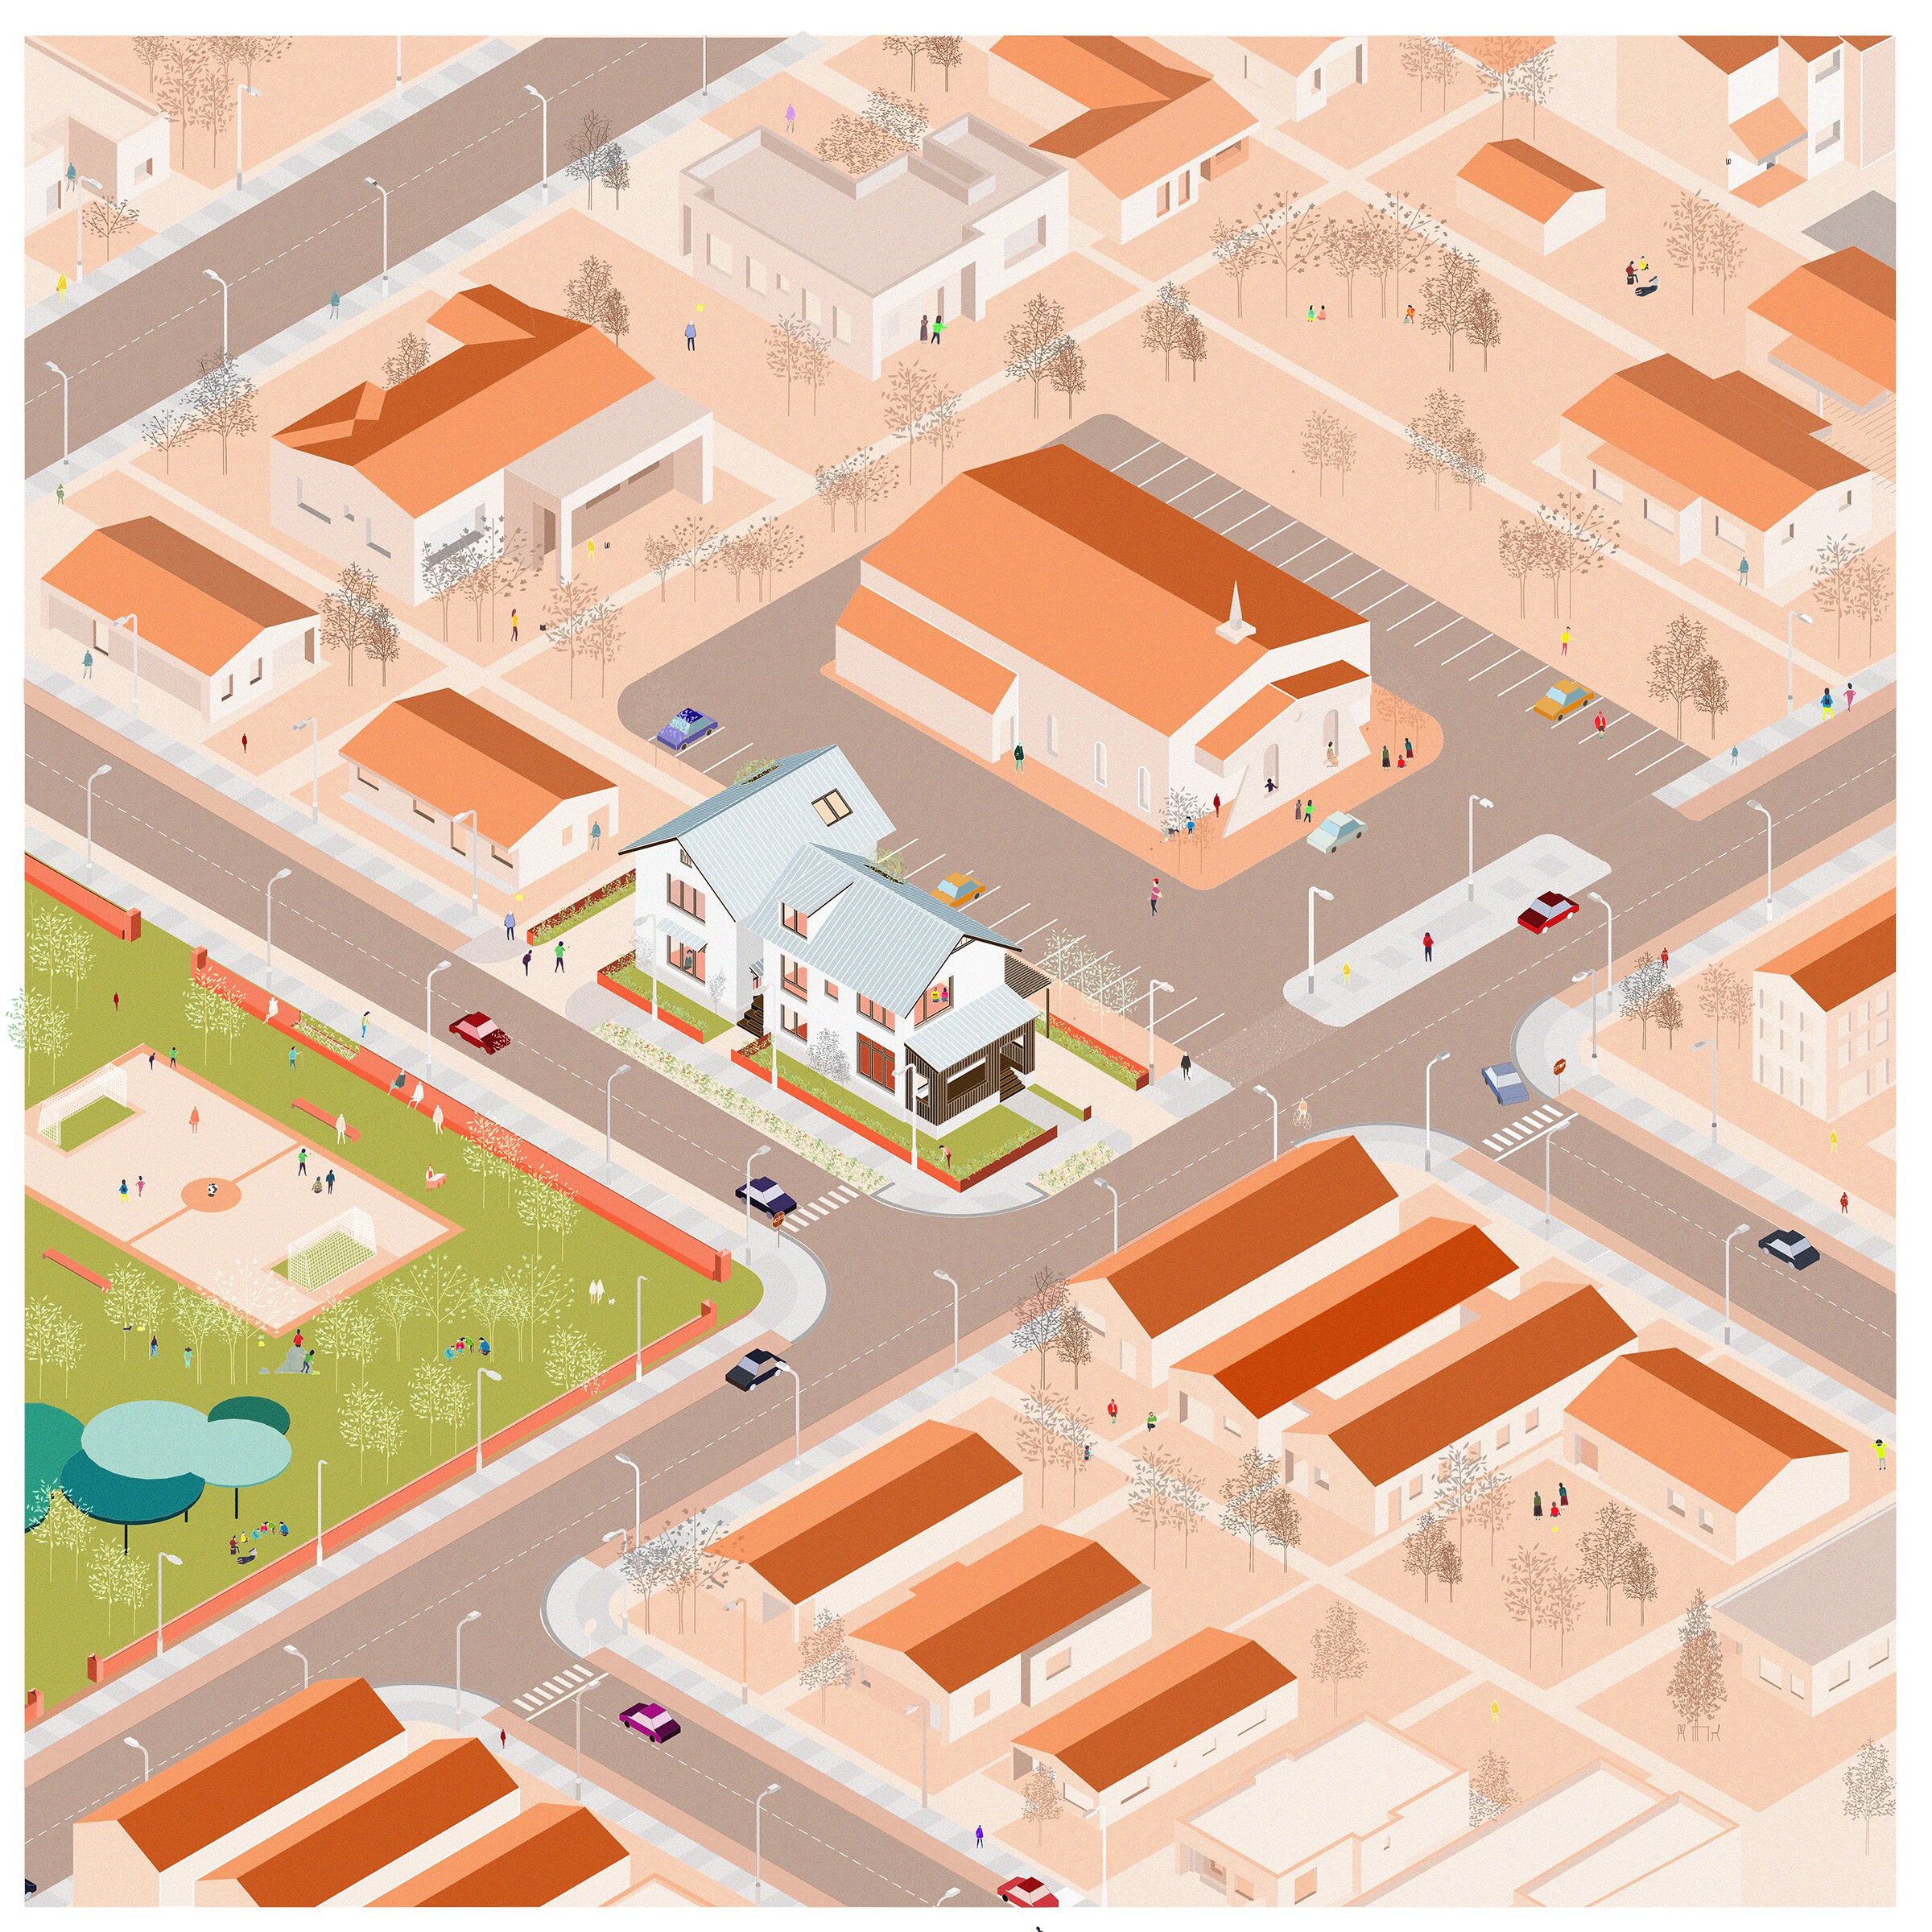 Isometric View of the Neighborhood Context